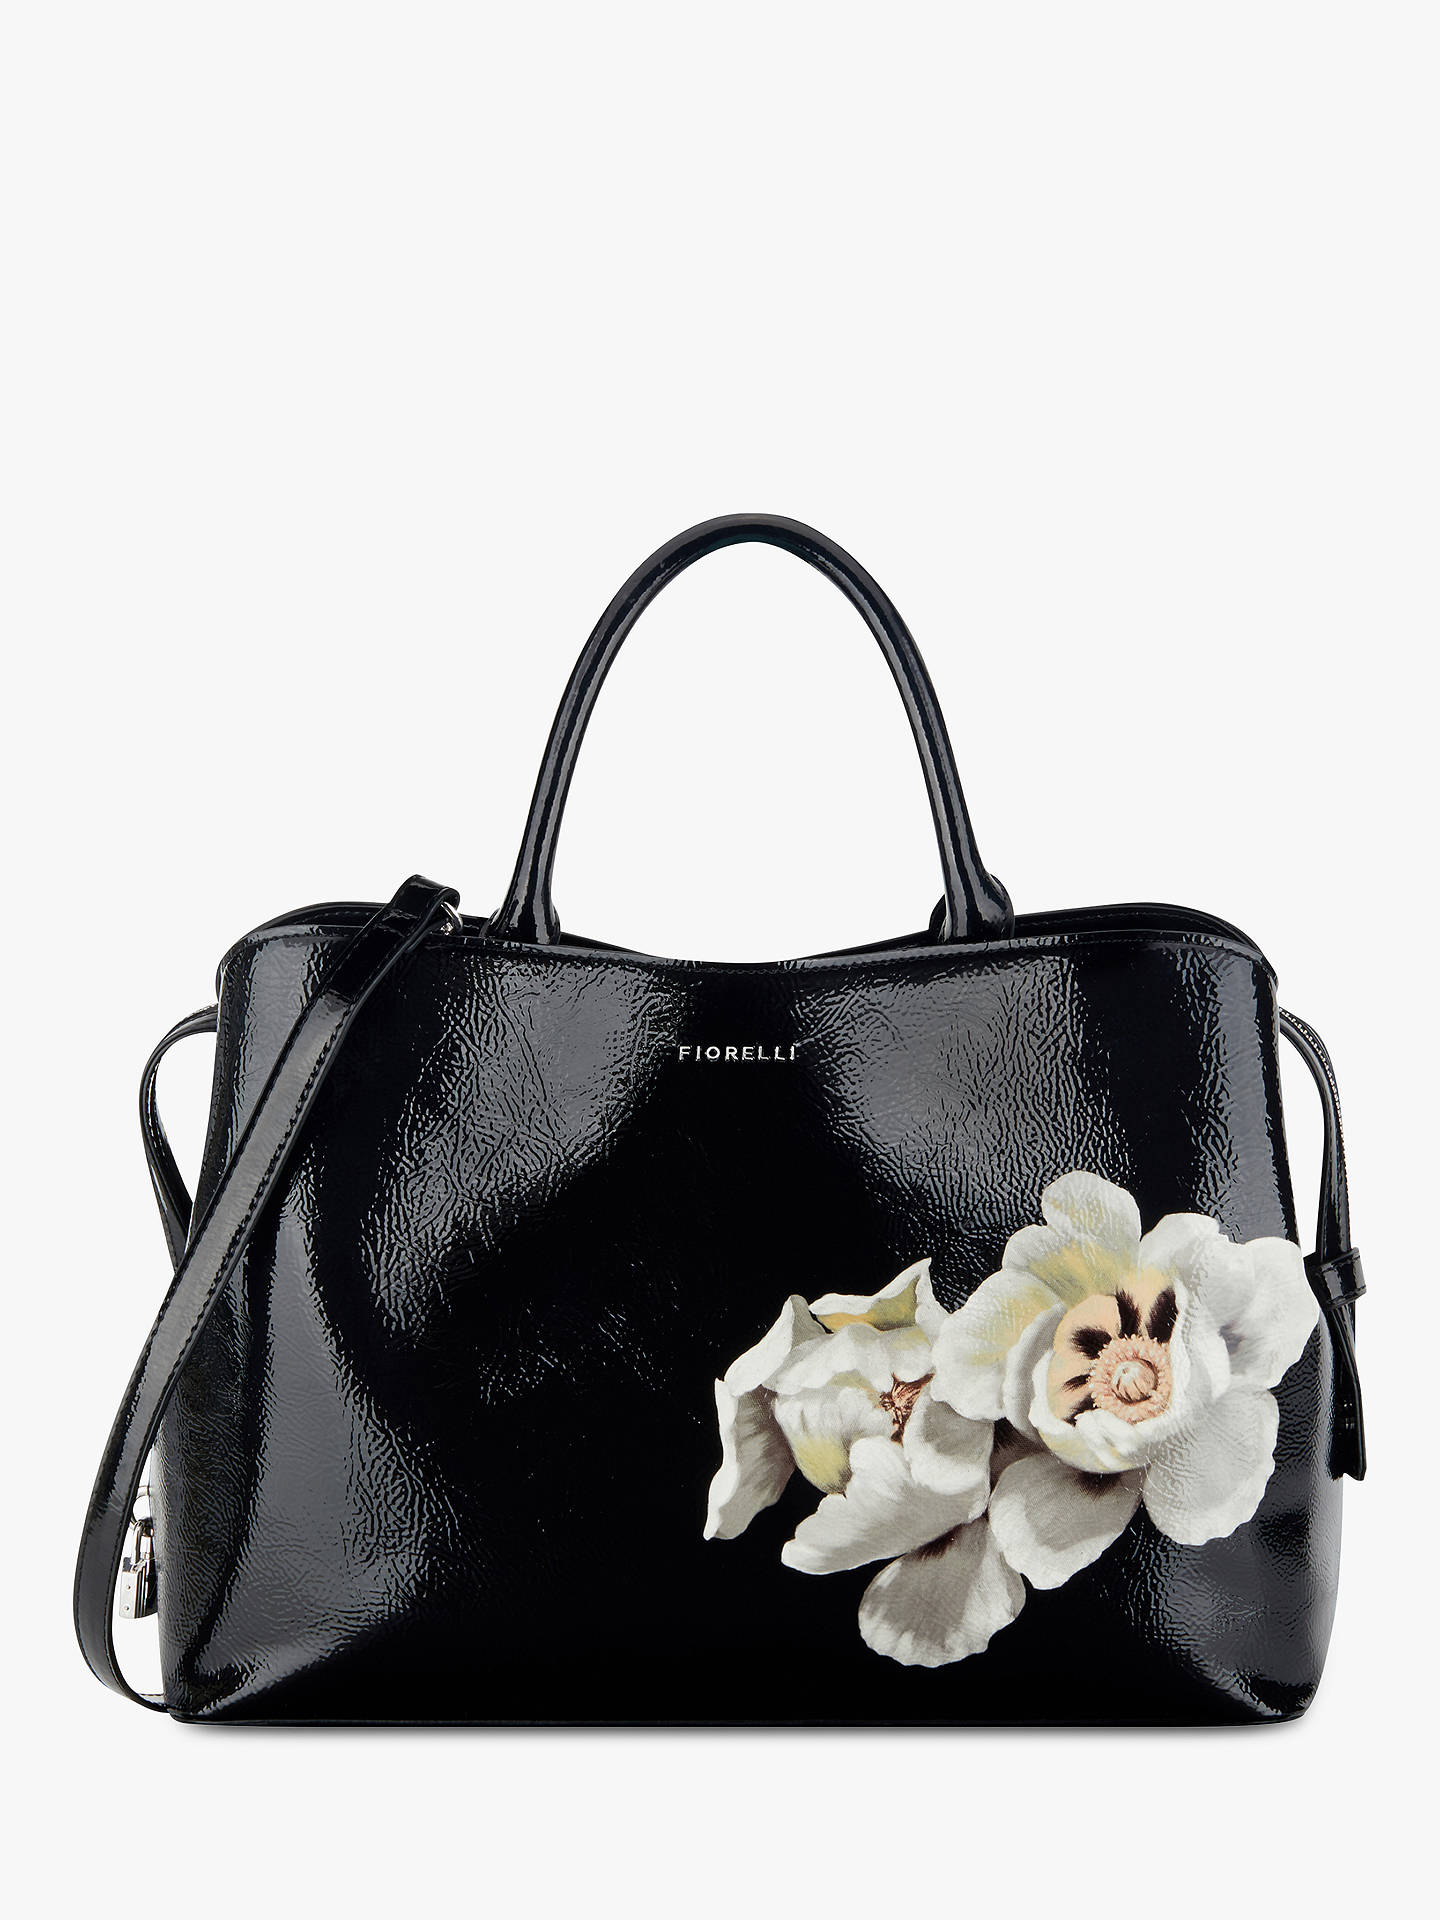 7cc39a471574 Buy Fiorelli Bethnal Triple Compartment Grab Bag, Multi Online at  johnlewis.com ...